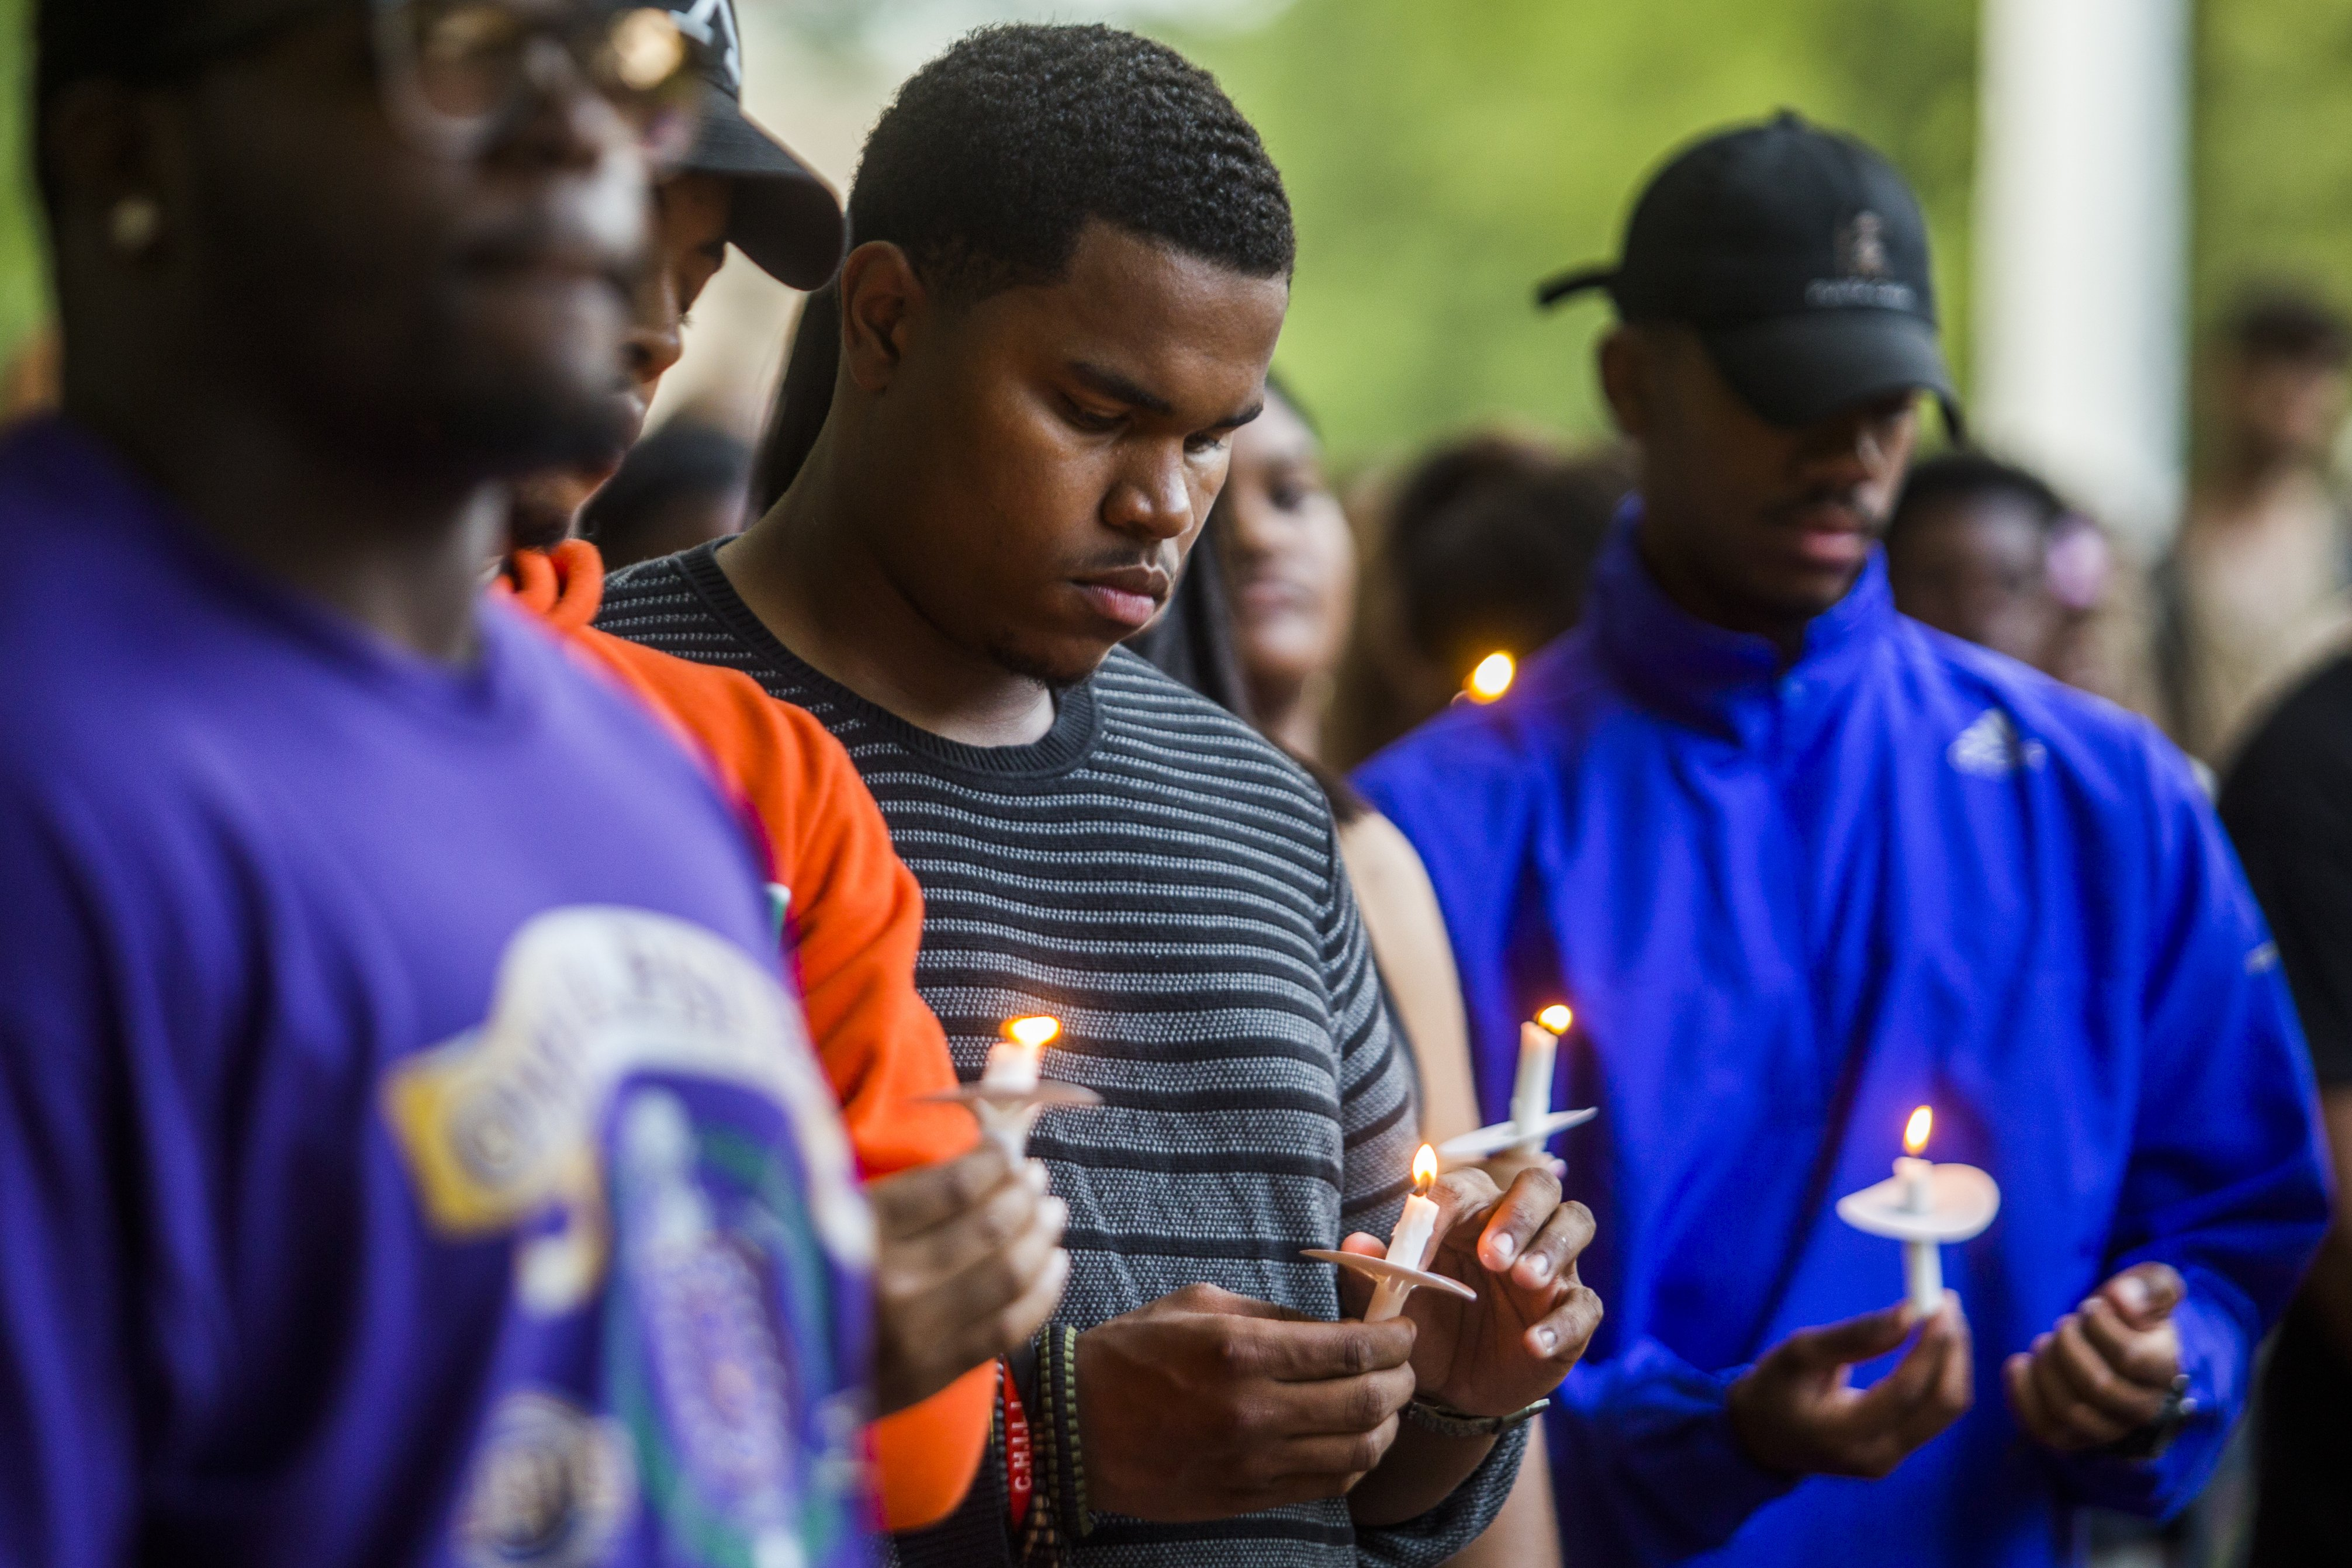 A vigil at the University of Michigan Diag in Ann Arbor, Mich., in honor of Alton Sterling and Philando Castile, on July 7, 2016.